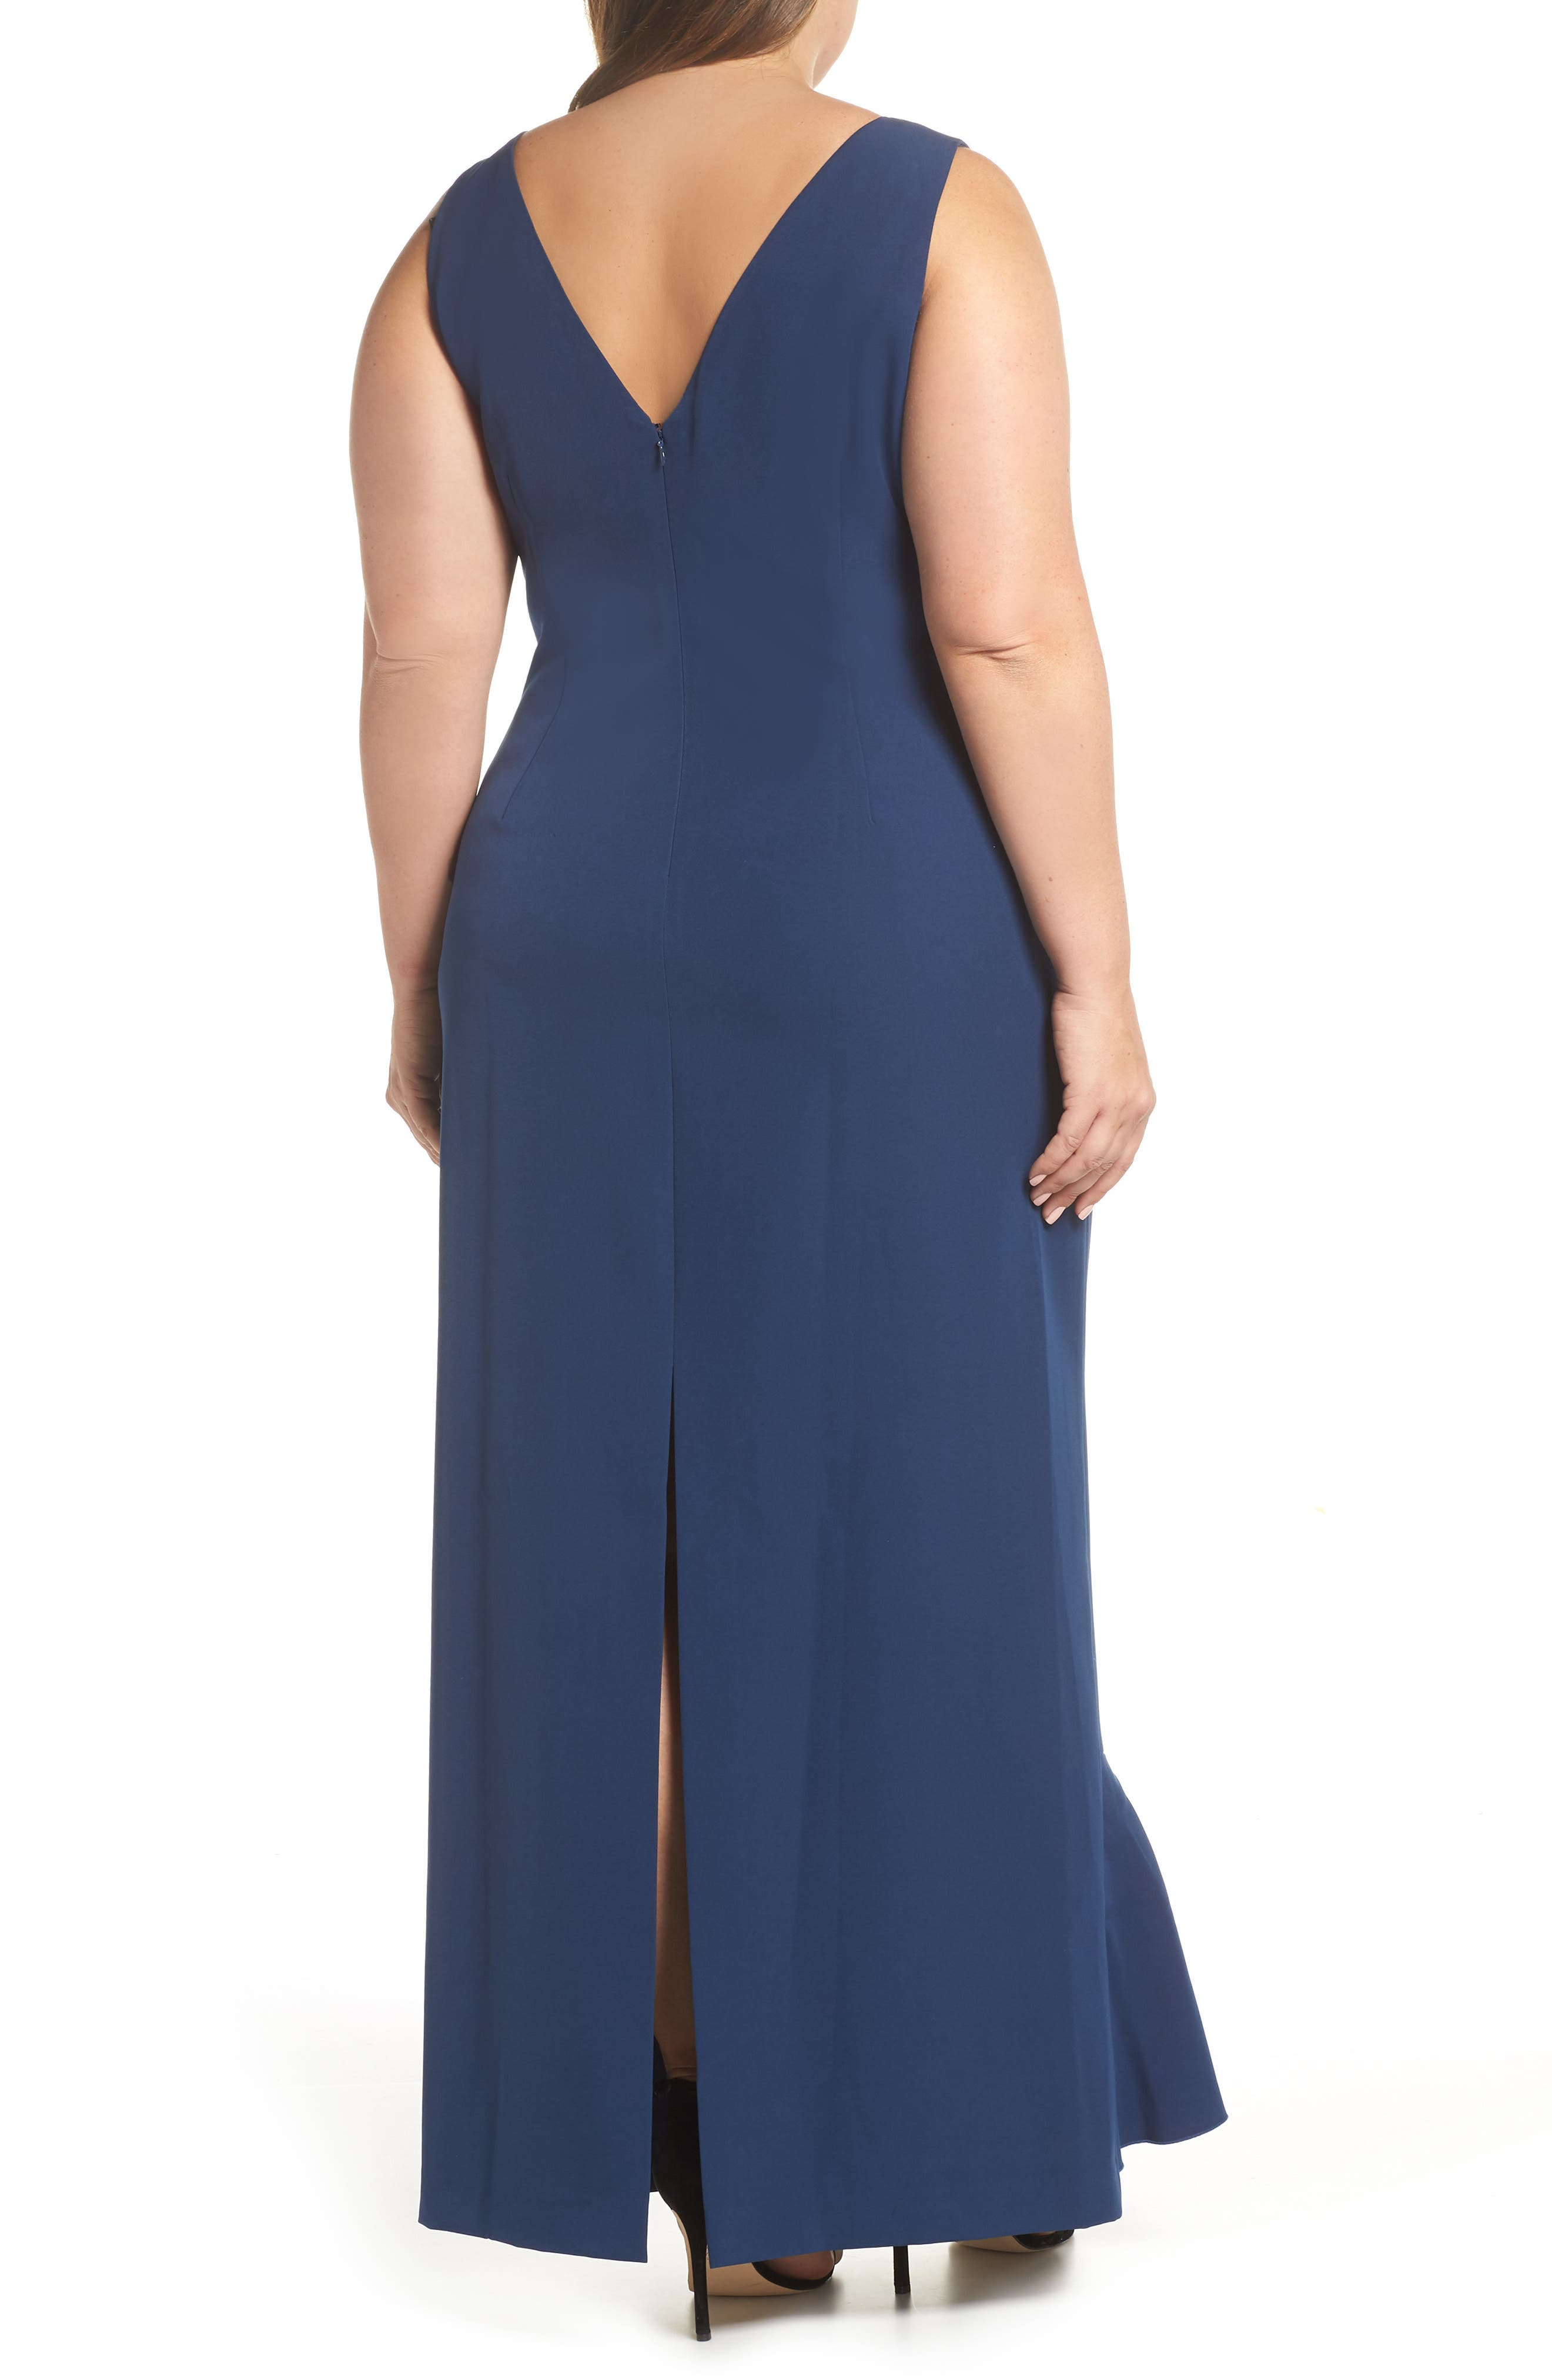 VINCE CAMUTO, Side Drape Ruffle Gown, Alternate thumbnail 2, color, 421